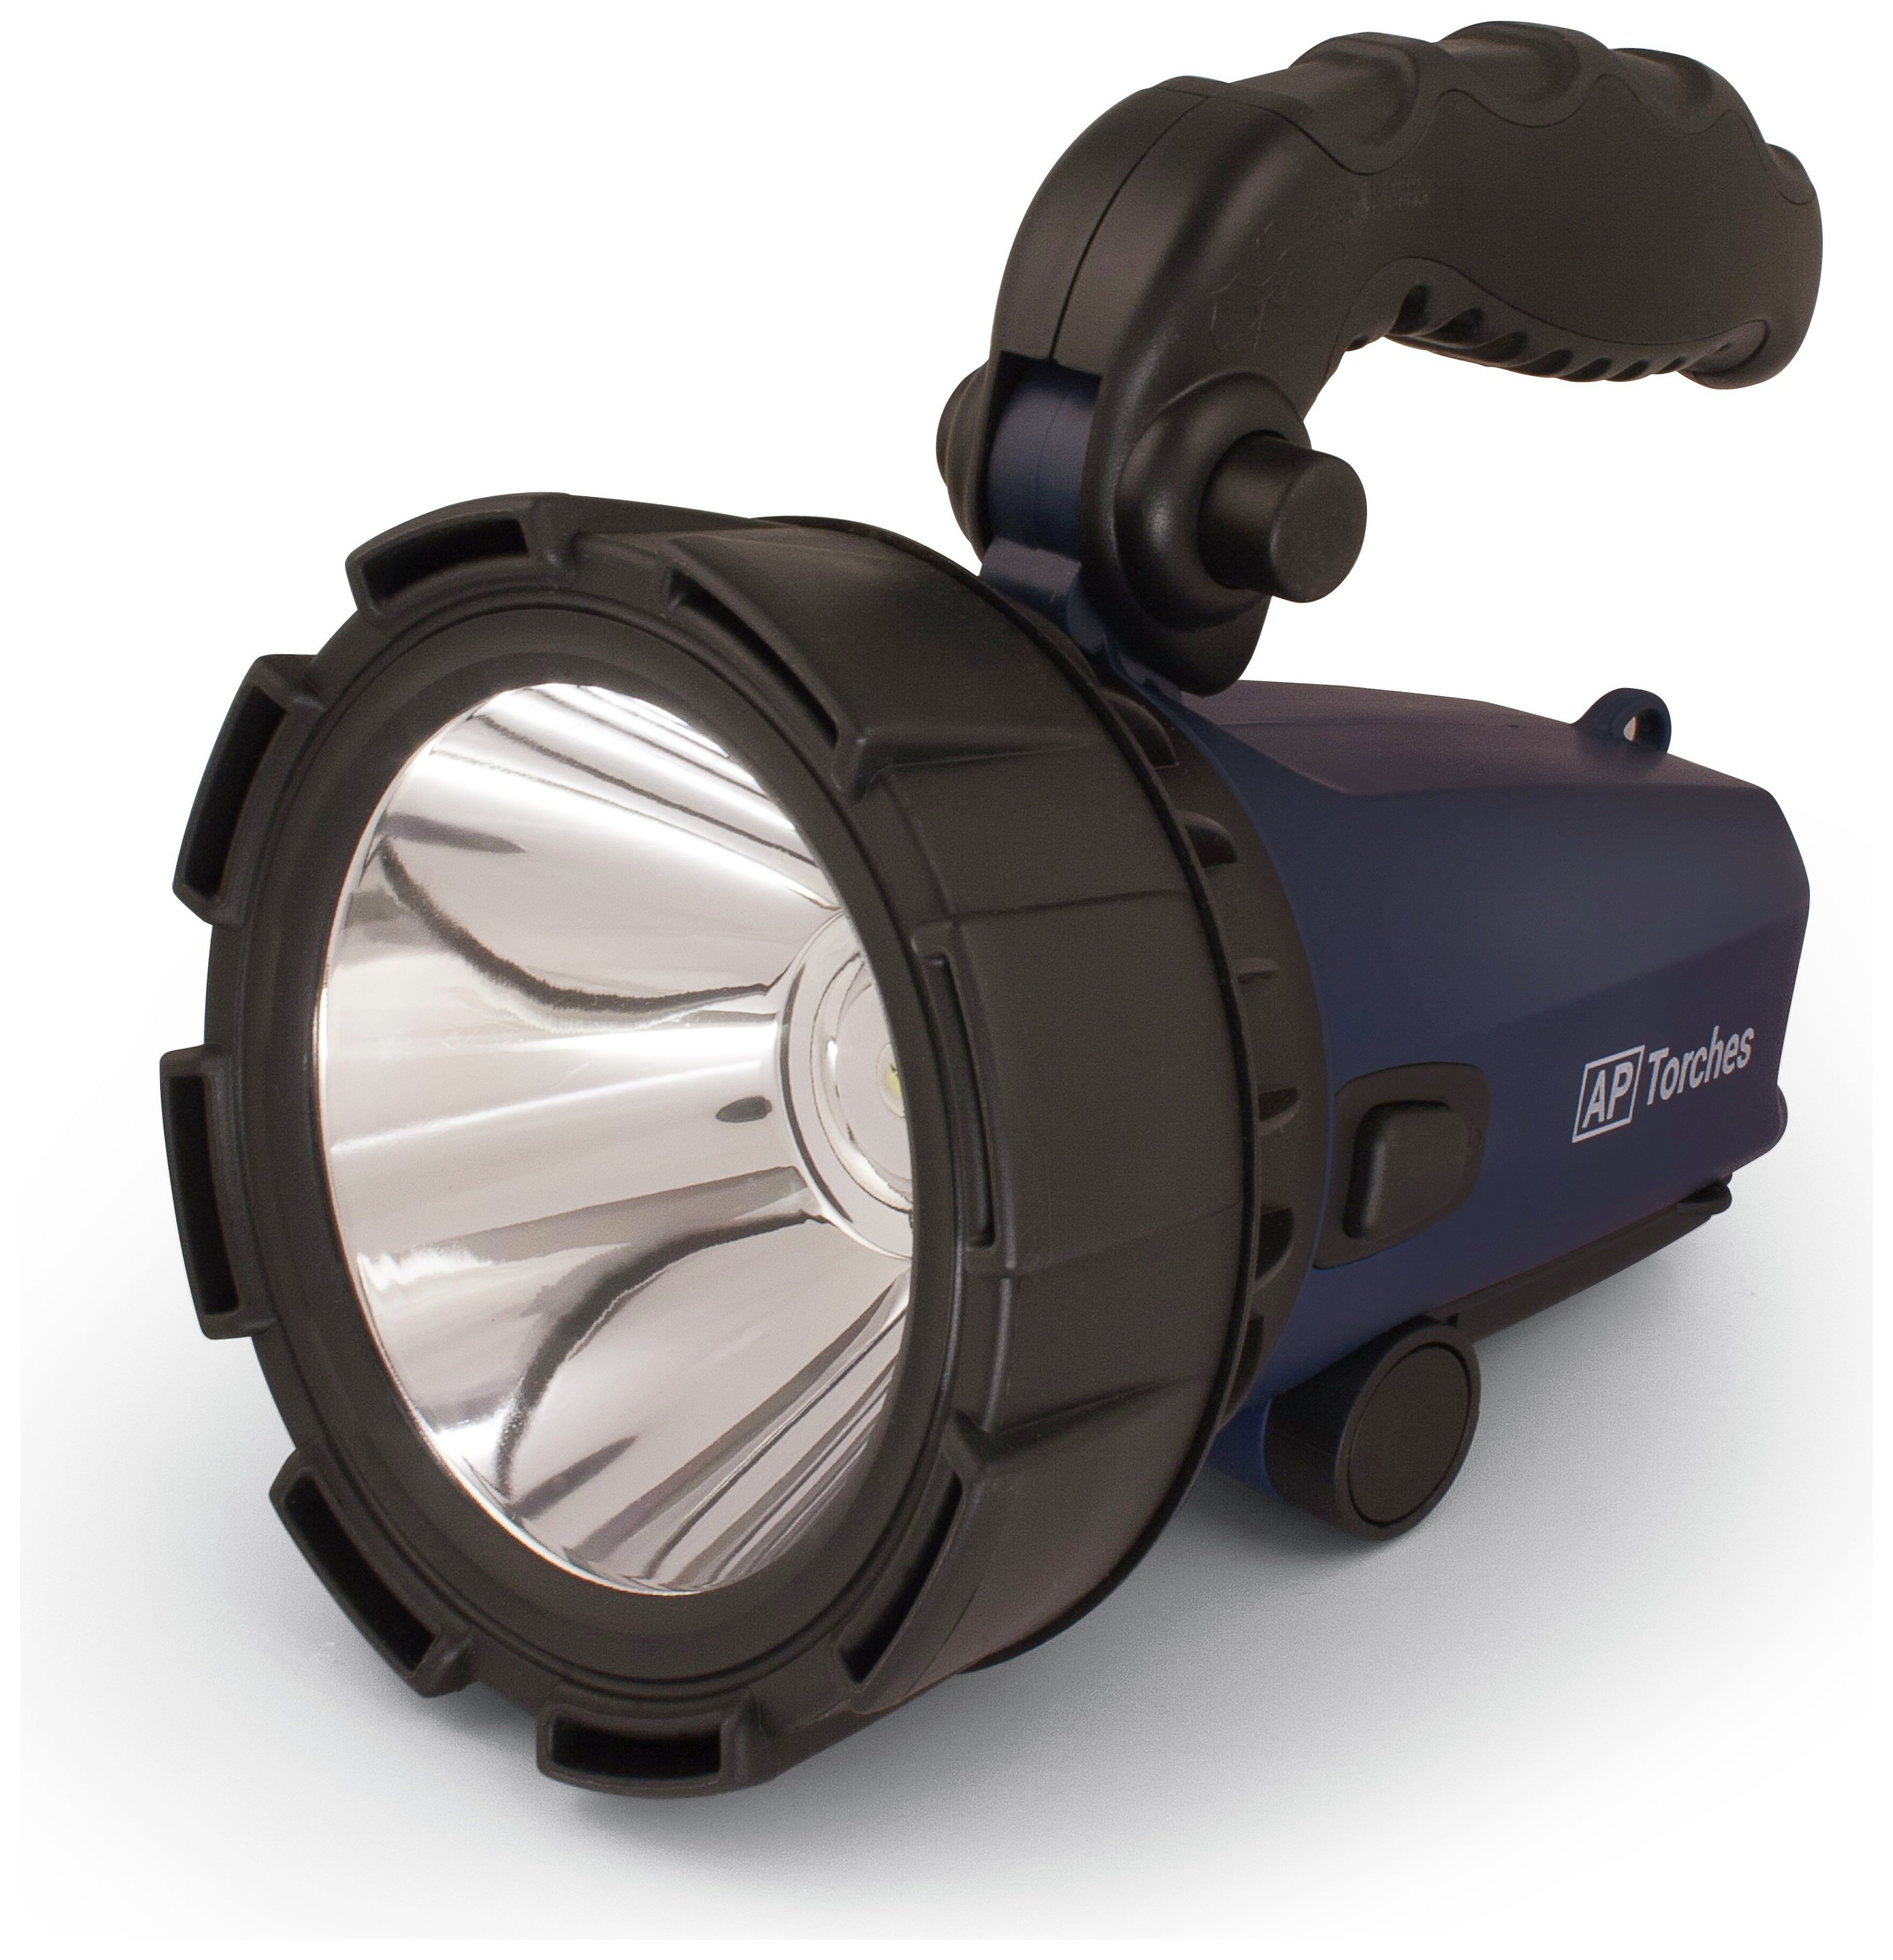 Image of AP Torches - 130 Lumen Rechargeable Spotlight